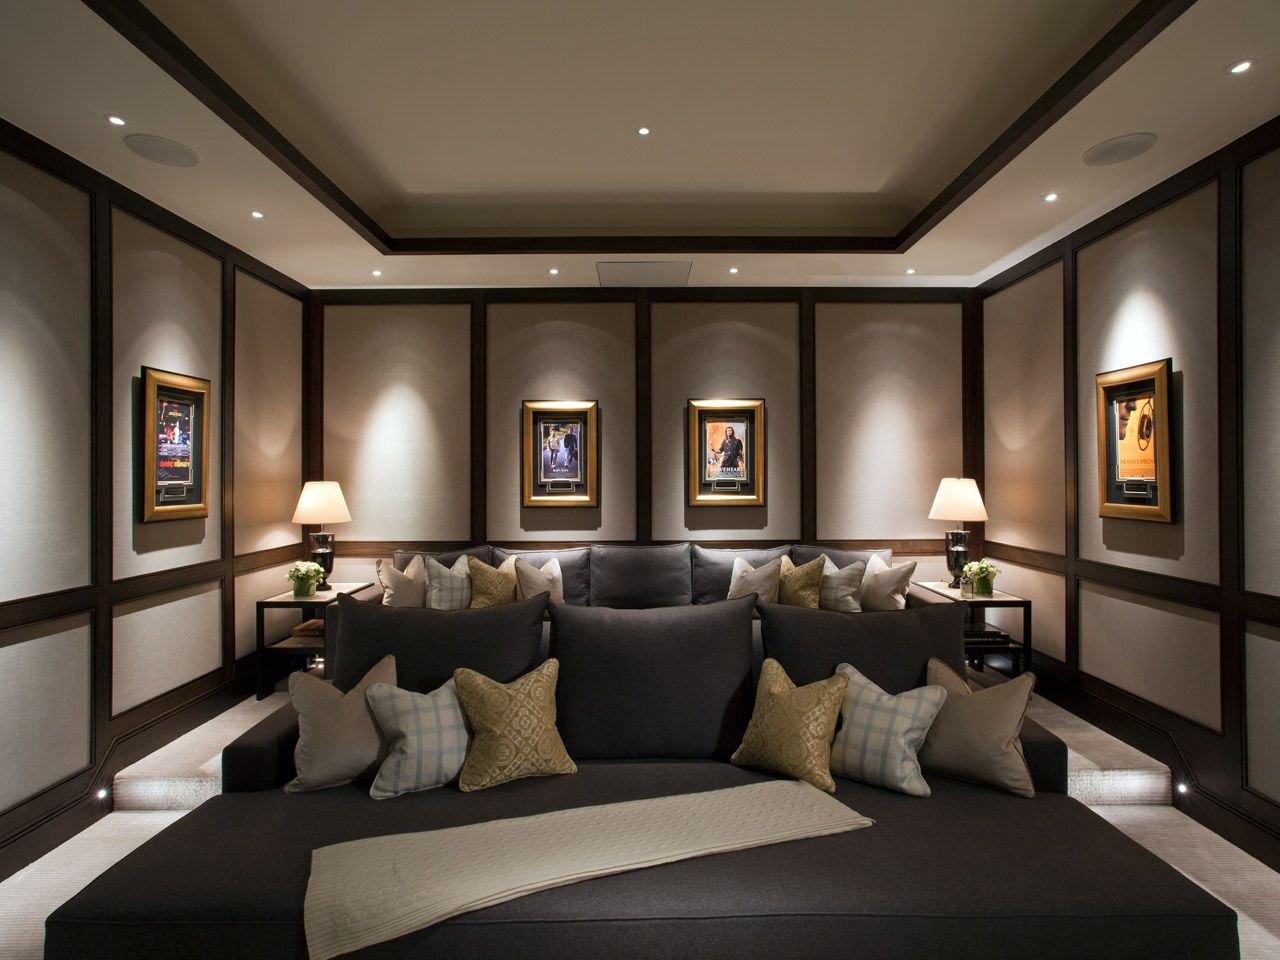 Theatre Room Furniture Downlights At Their Best When Lighting Artwork Furniture